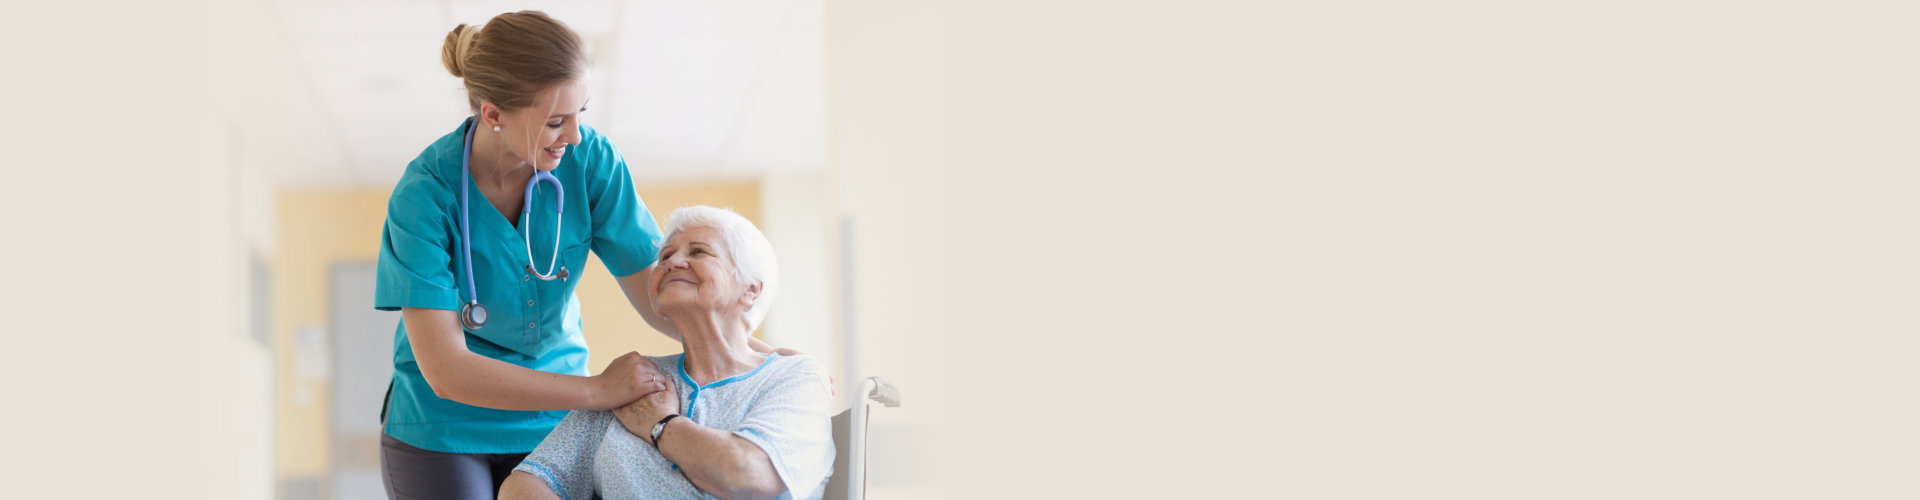 caregiver chatting with senior woman